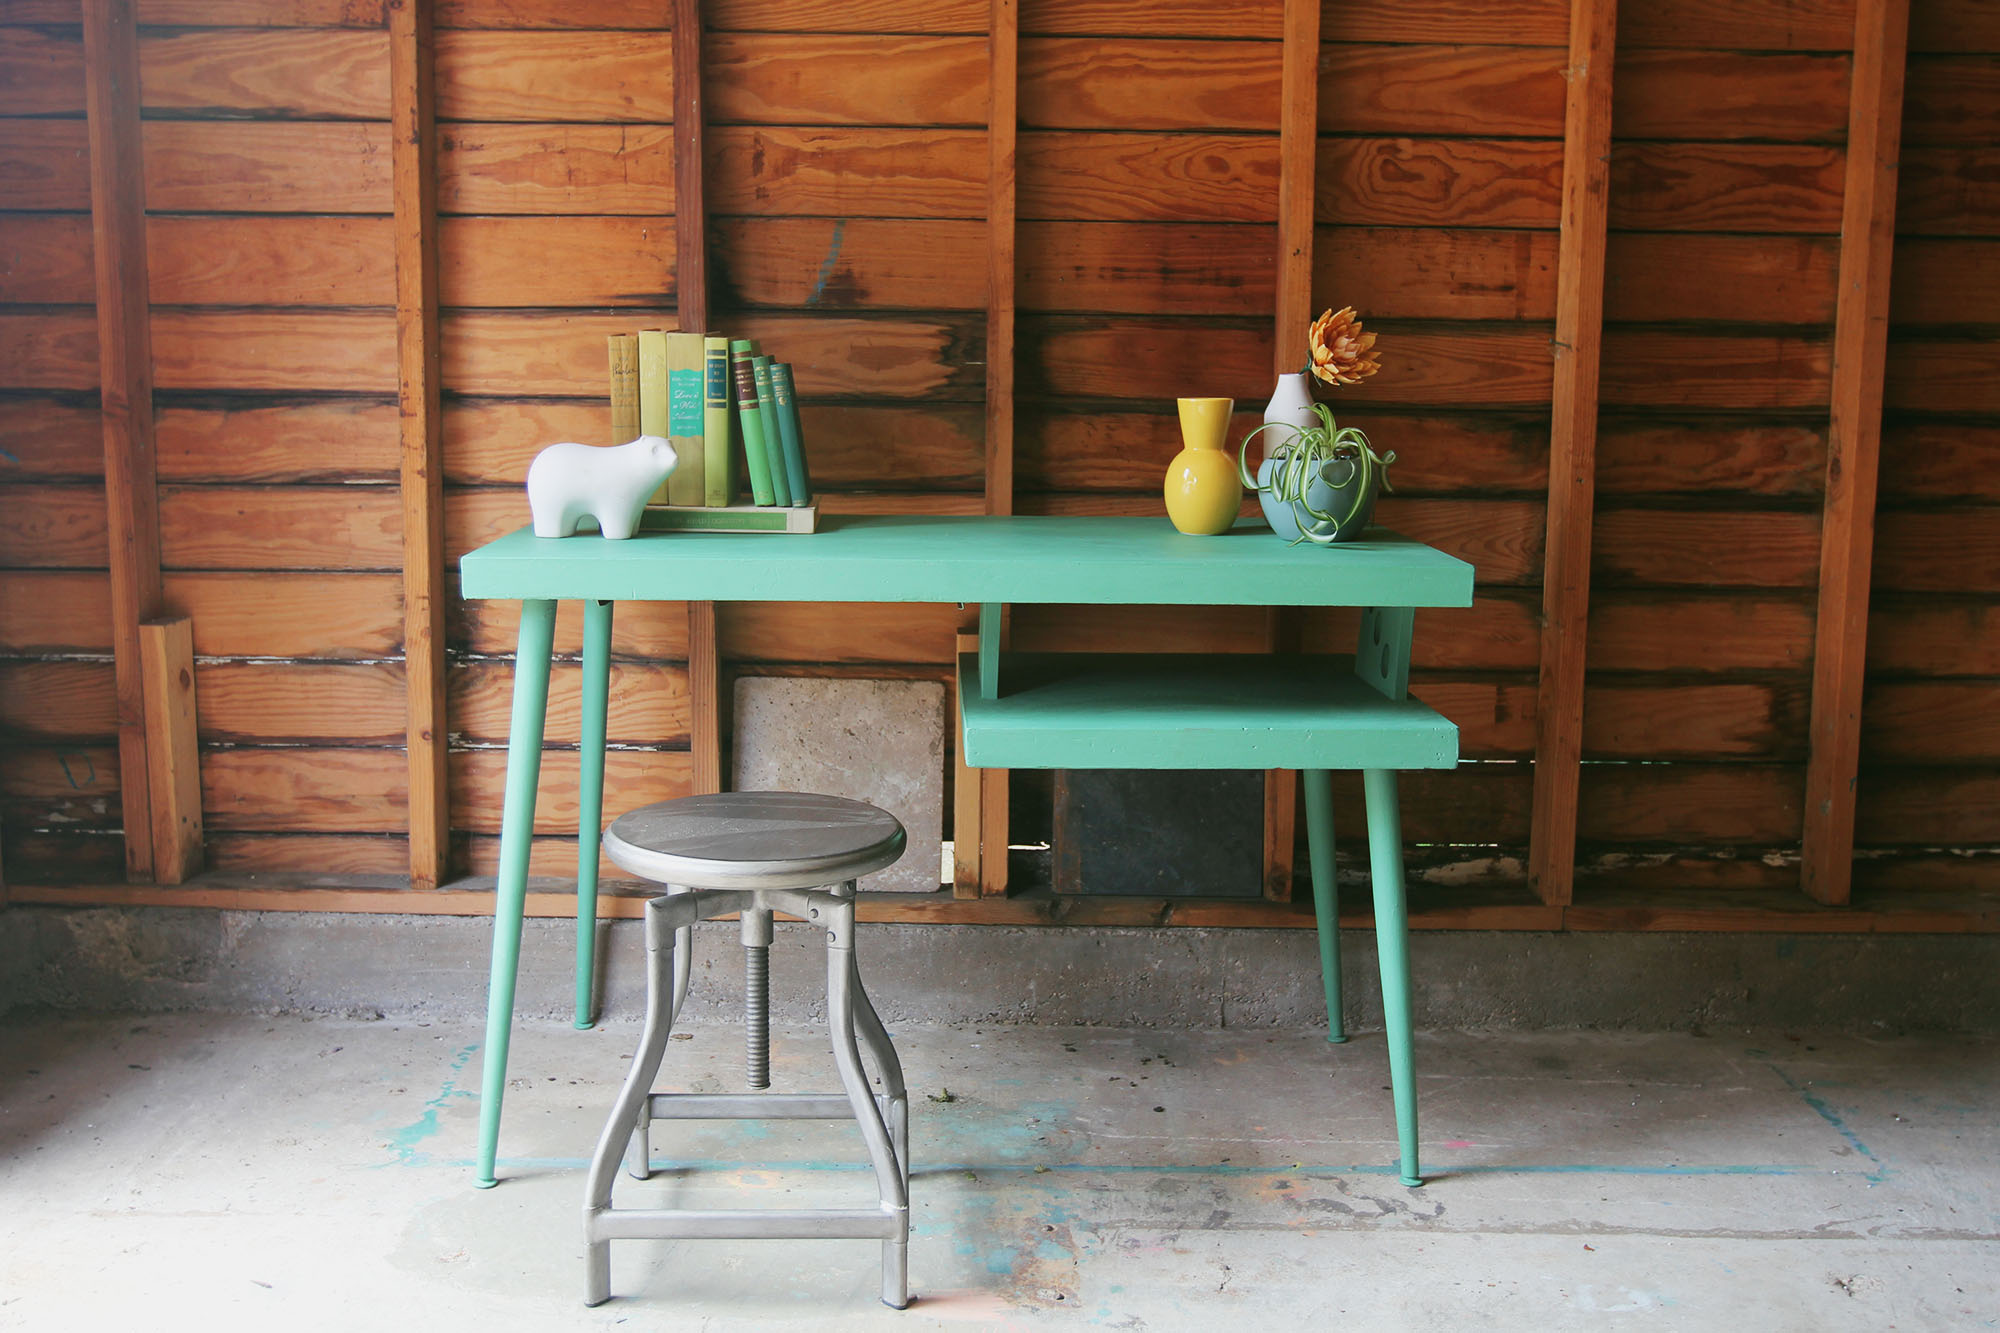 a-simpler-design-dallas-furniture-green-mid-century-desk-jpg4.jpg